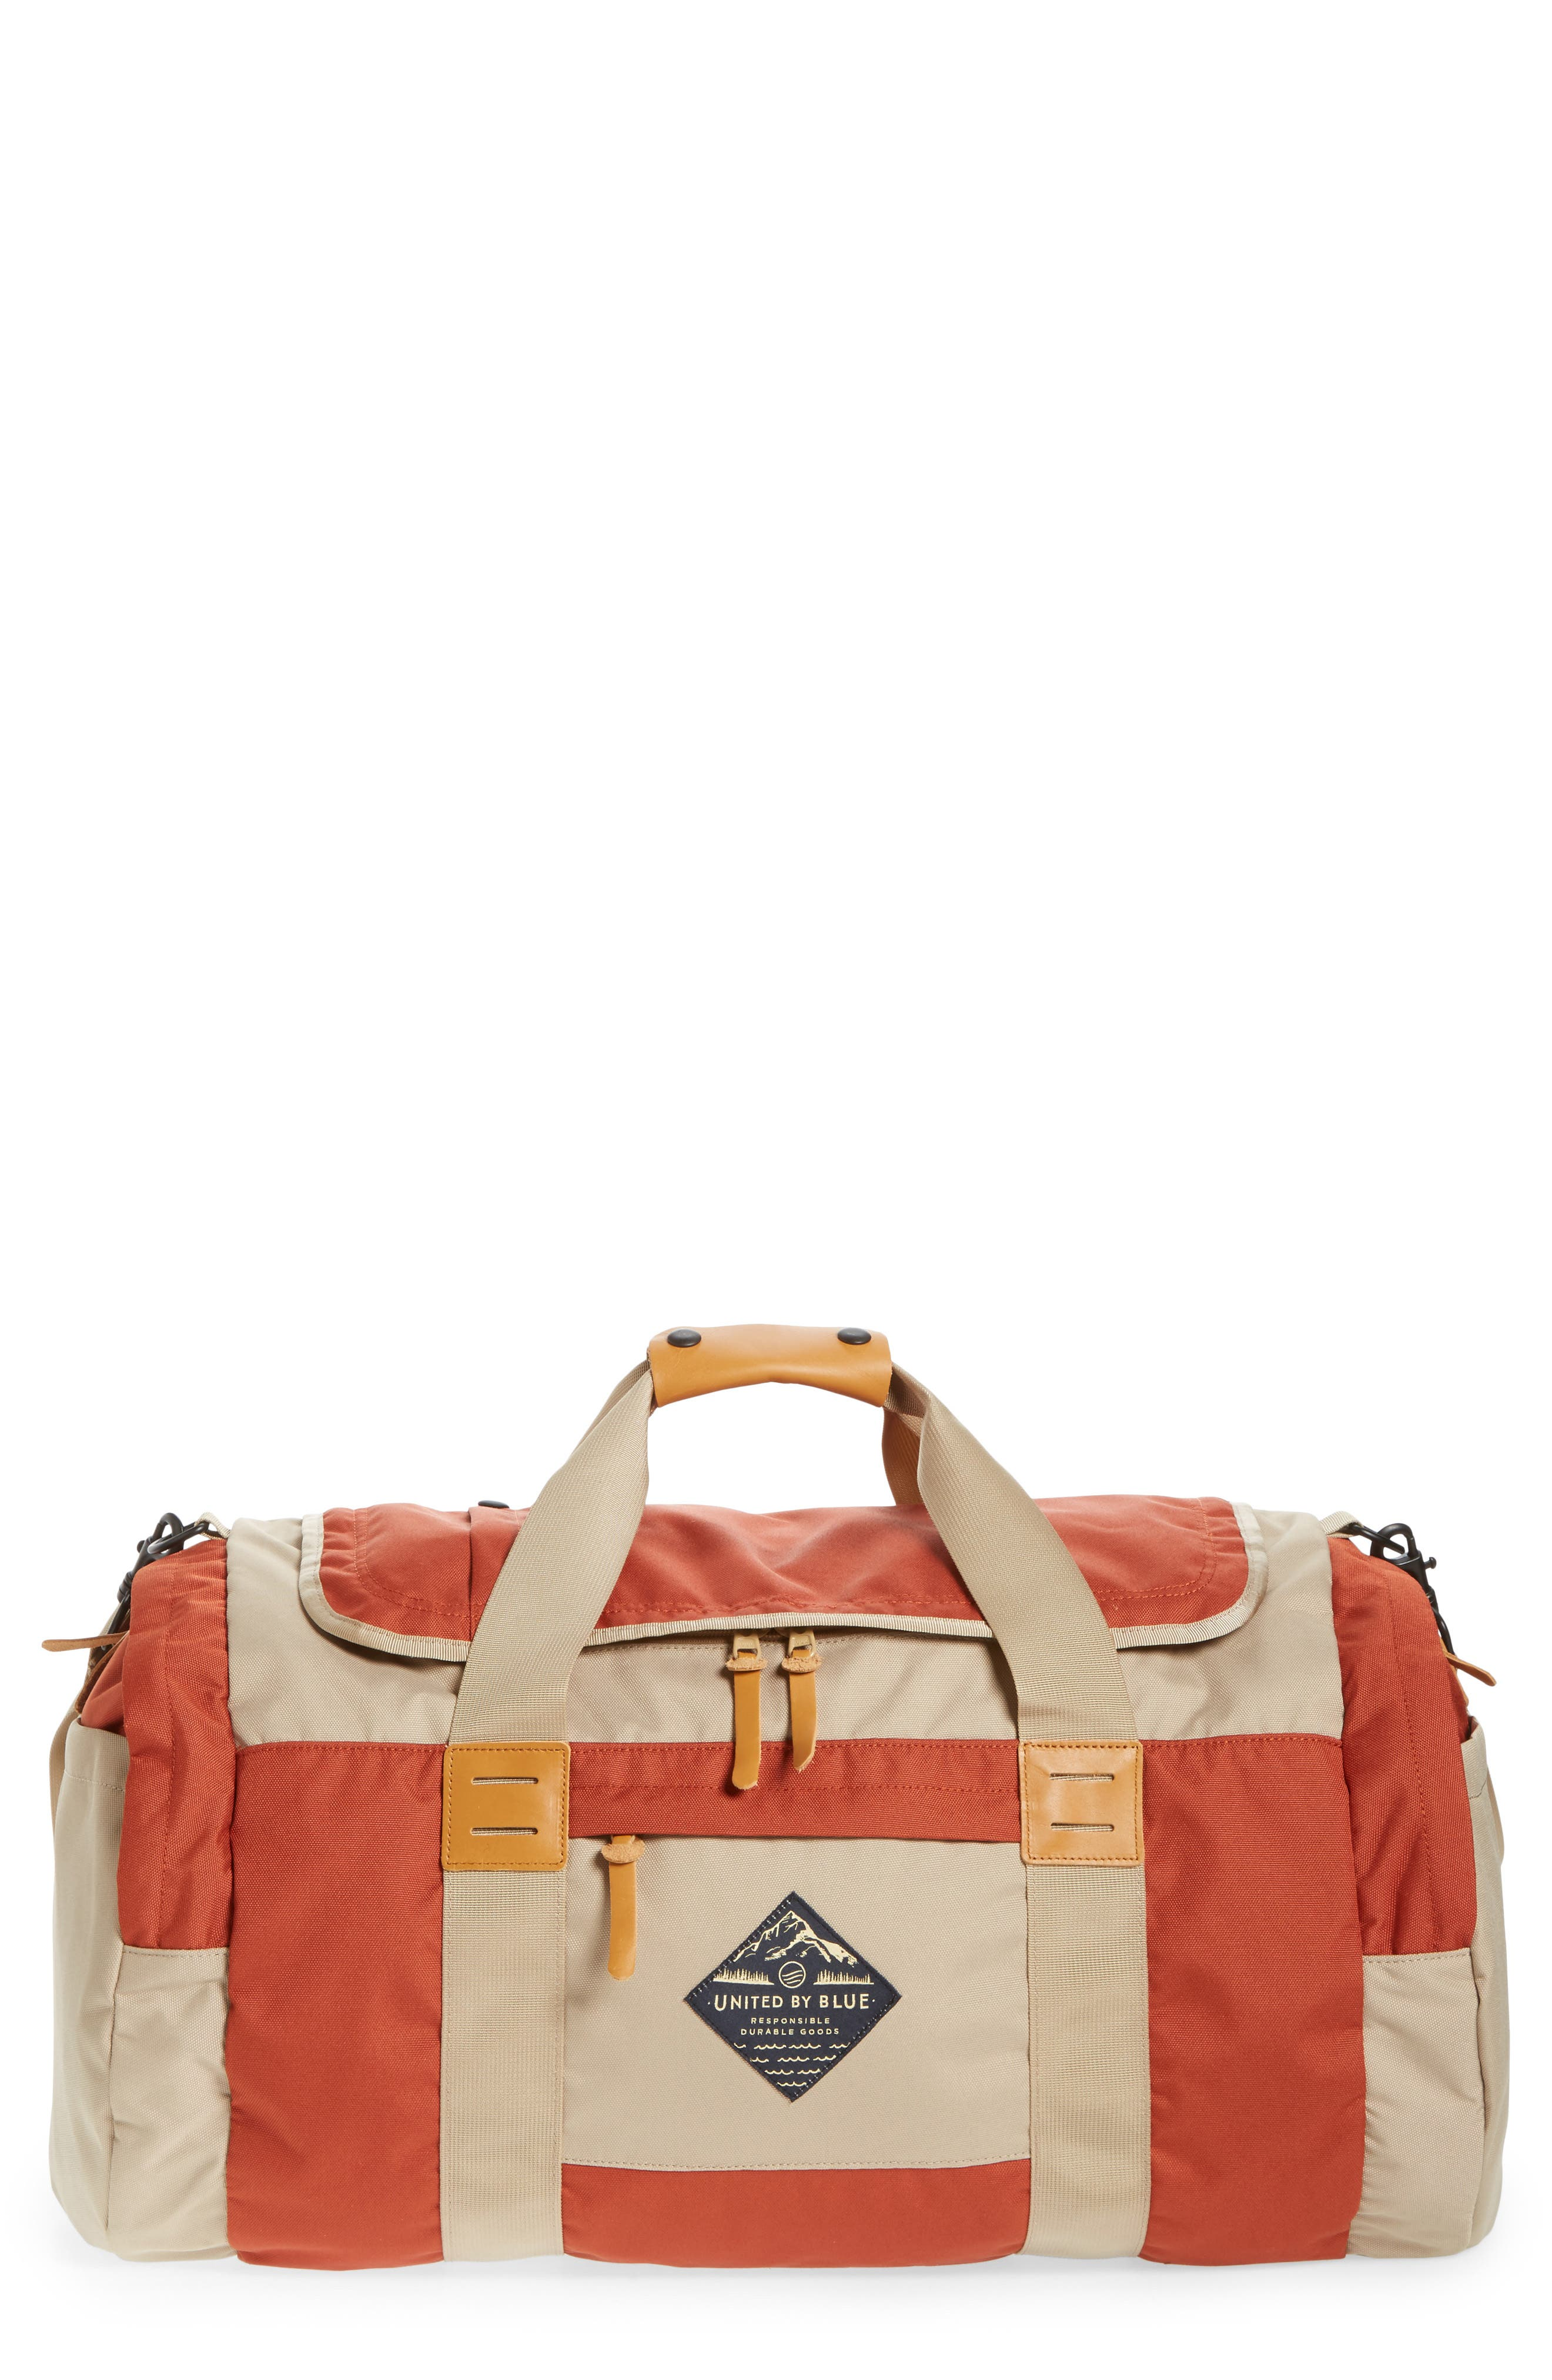 Arc Duffel Bag,                         Main,                         color, Rust/ Tan